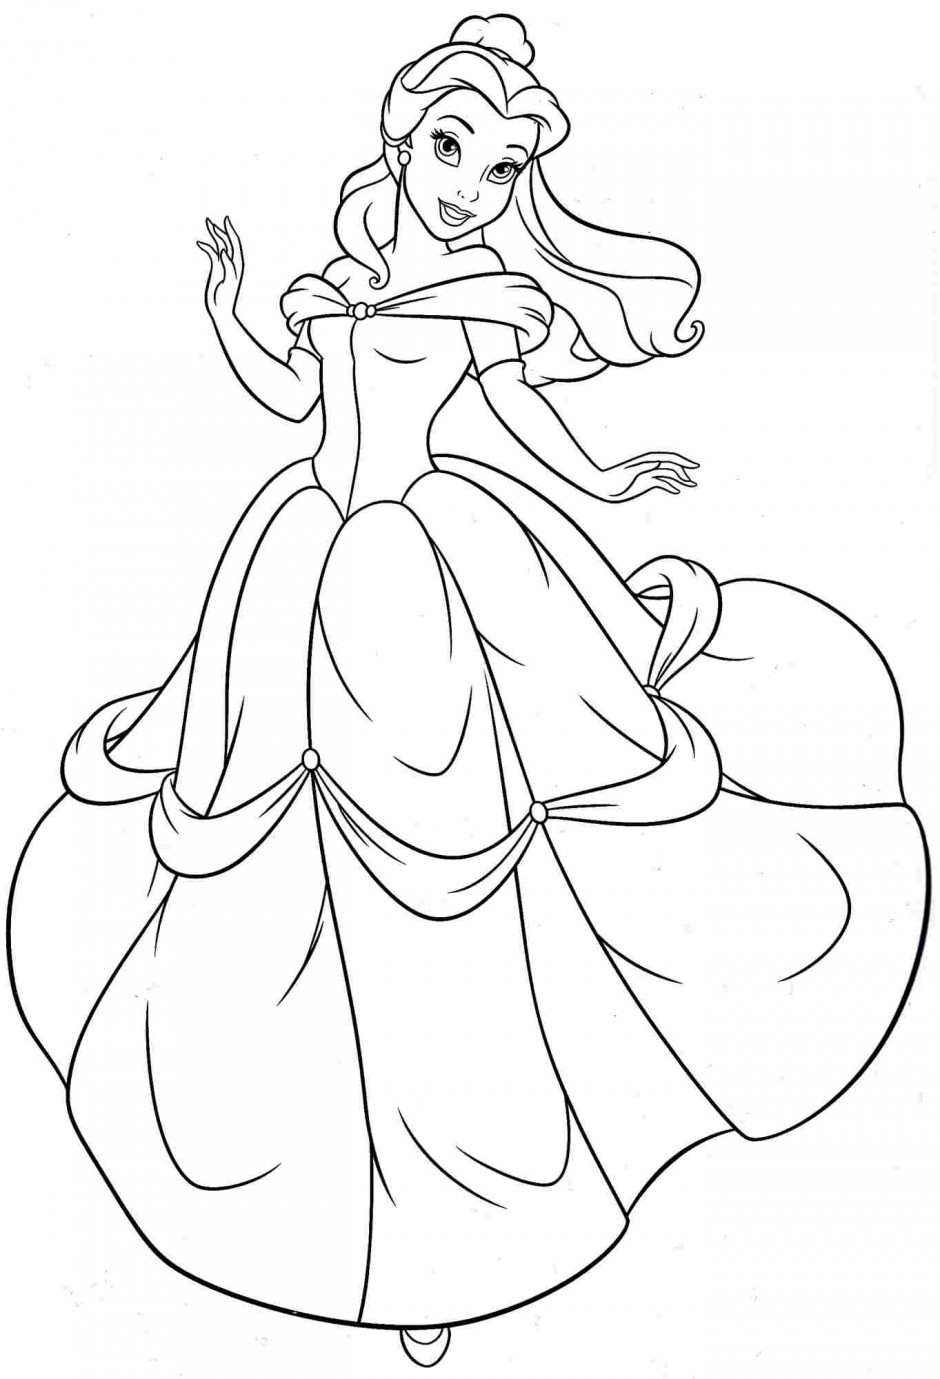 Belle Coloring Pages : belle, coloring, pages, Printable, Belle, Coloring, Pages